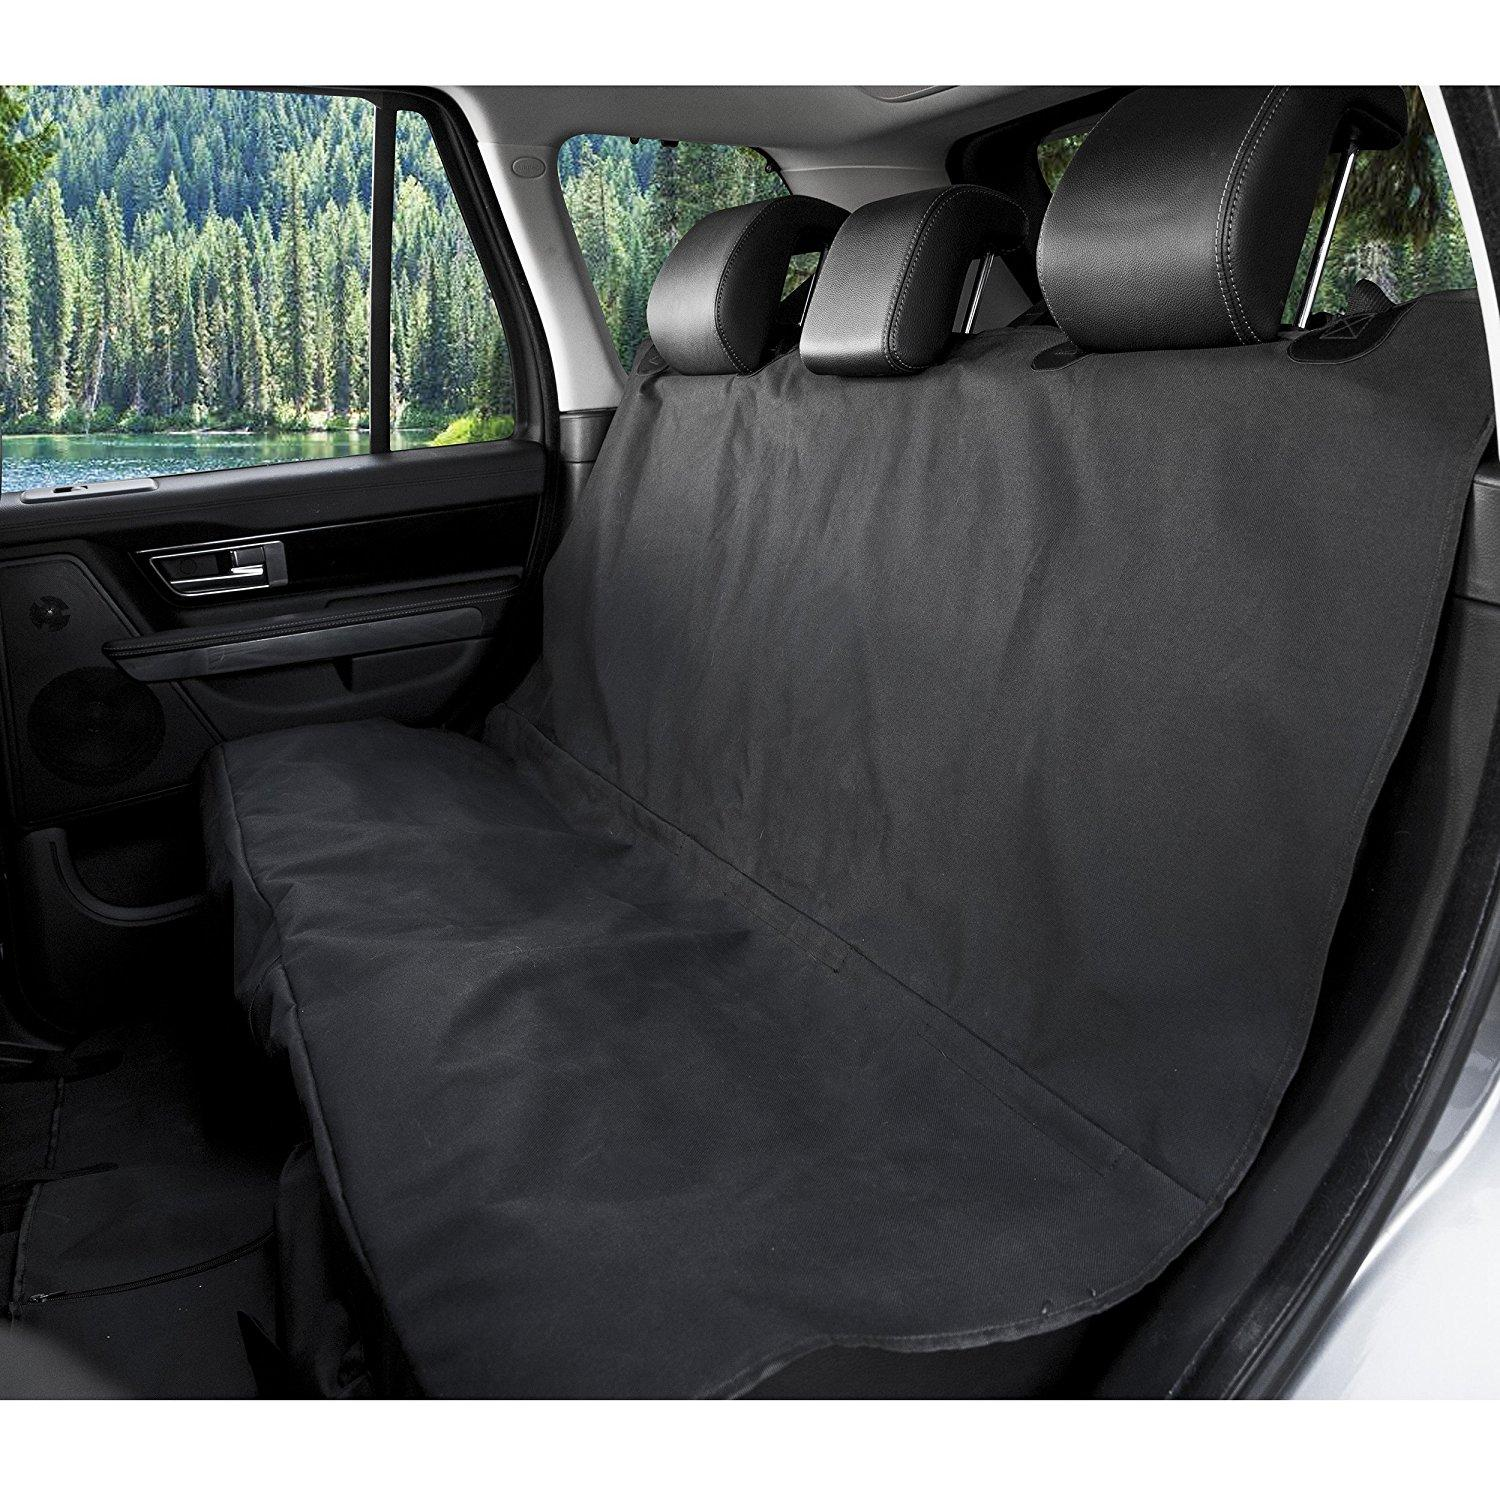 Barksbar Original Pet Seat Cover For Cars Black